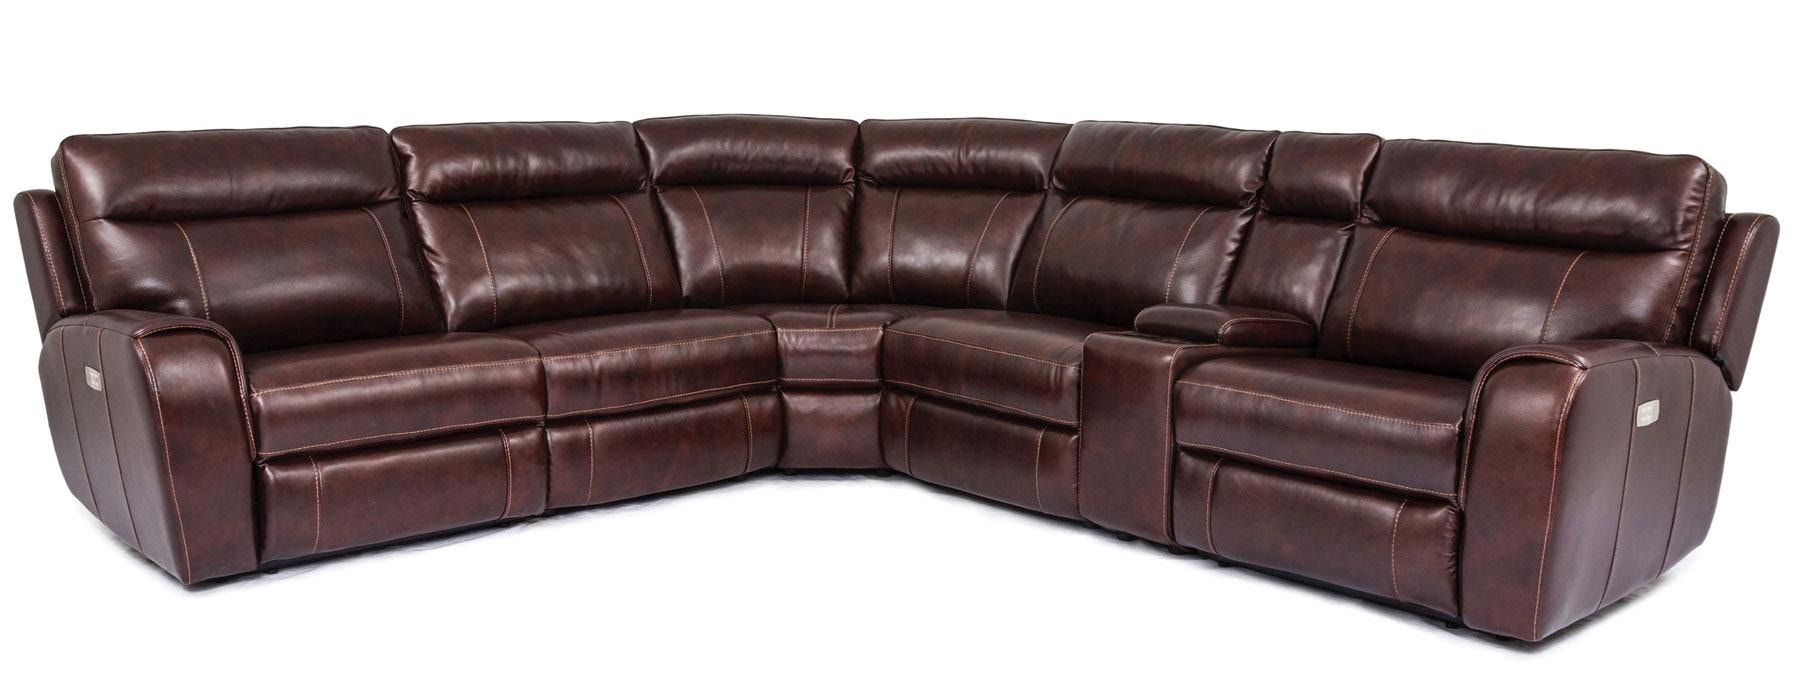 070117. Bradley Power Reclining Sectional